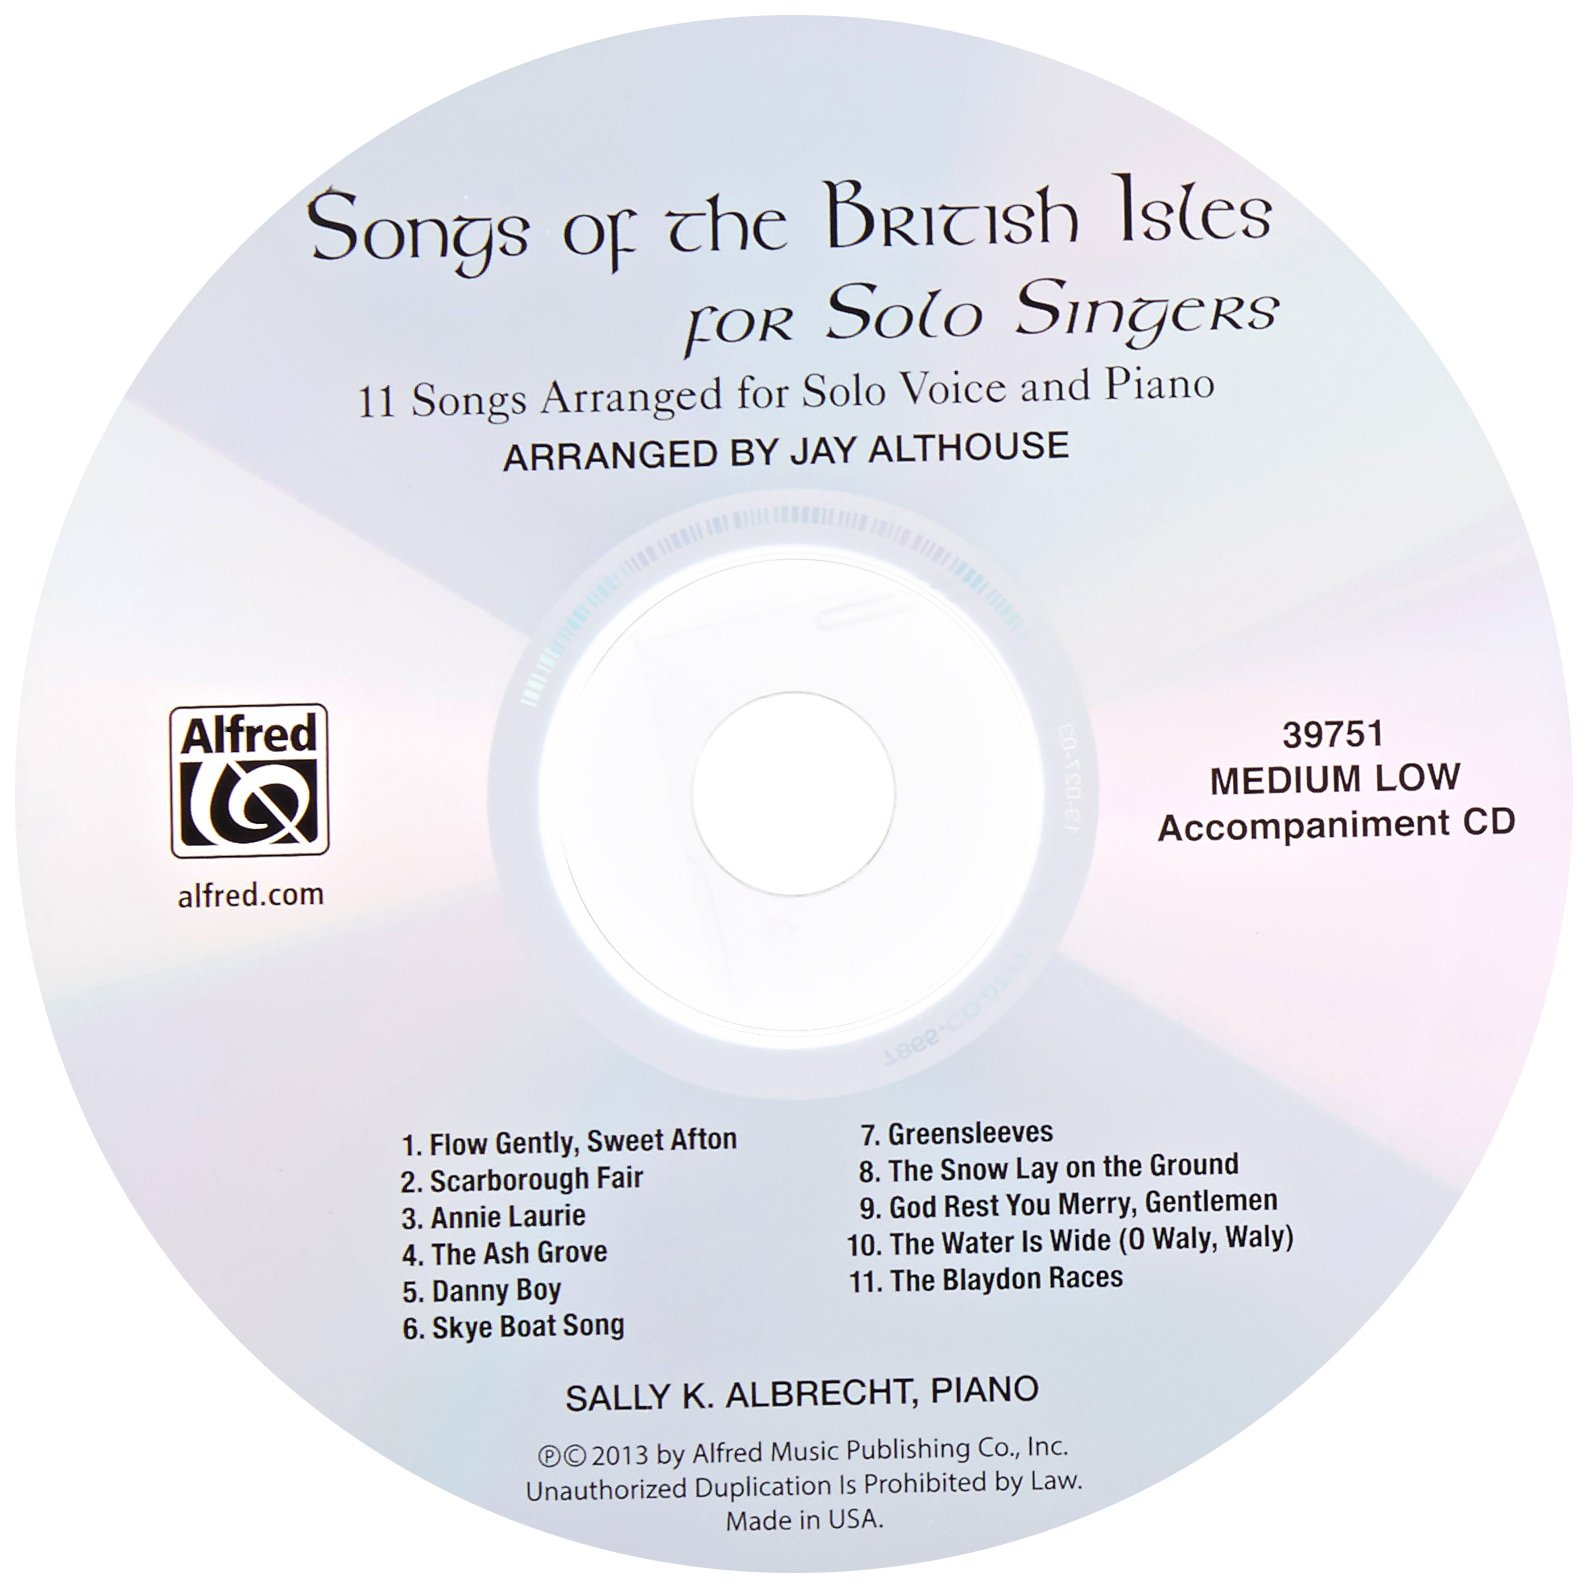 Songs of the British Isles for Solo Singers: 11 Songs